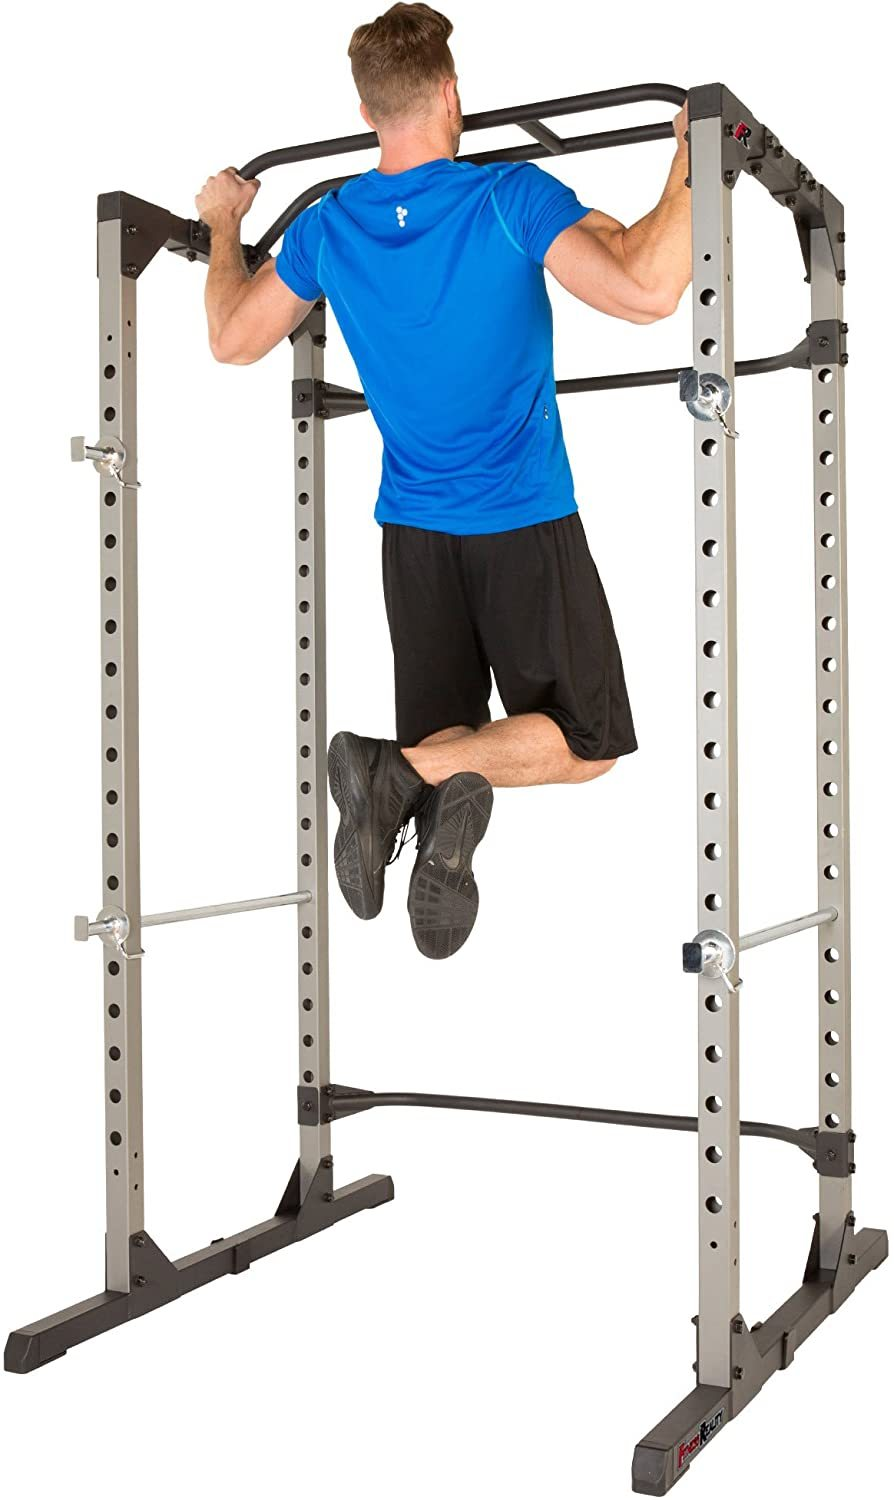 810XLT Super Max Power Cage with Optional LAT Pull-Down Attachment and Adjustable Leg Hold-Down